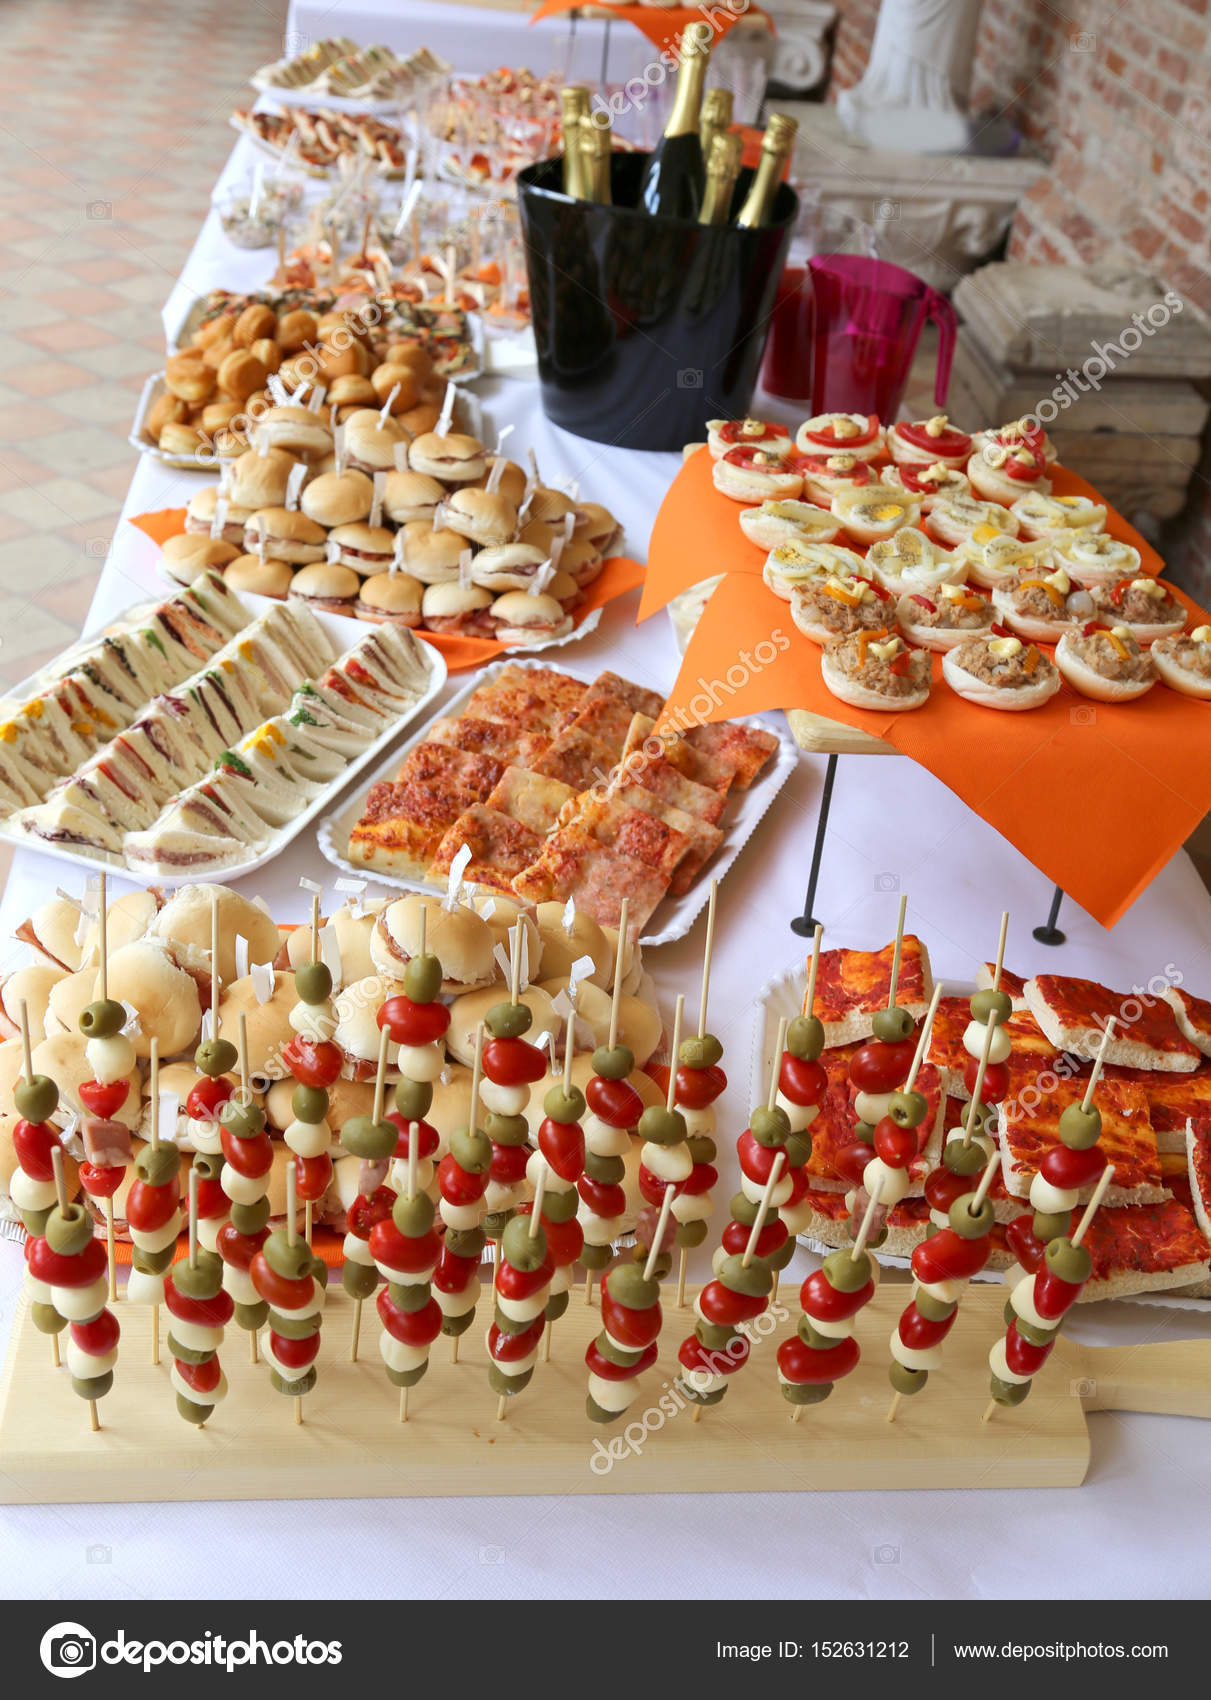 Tasty Sandwiches And Many Snack Food On The Table Of